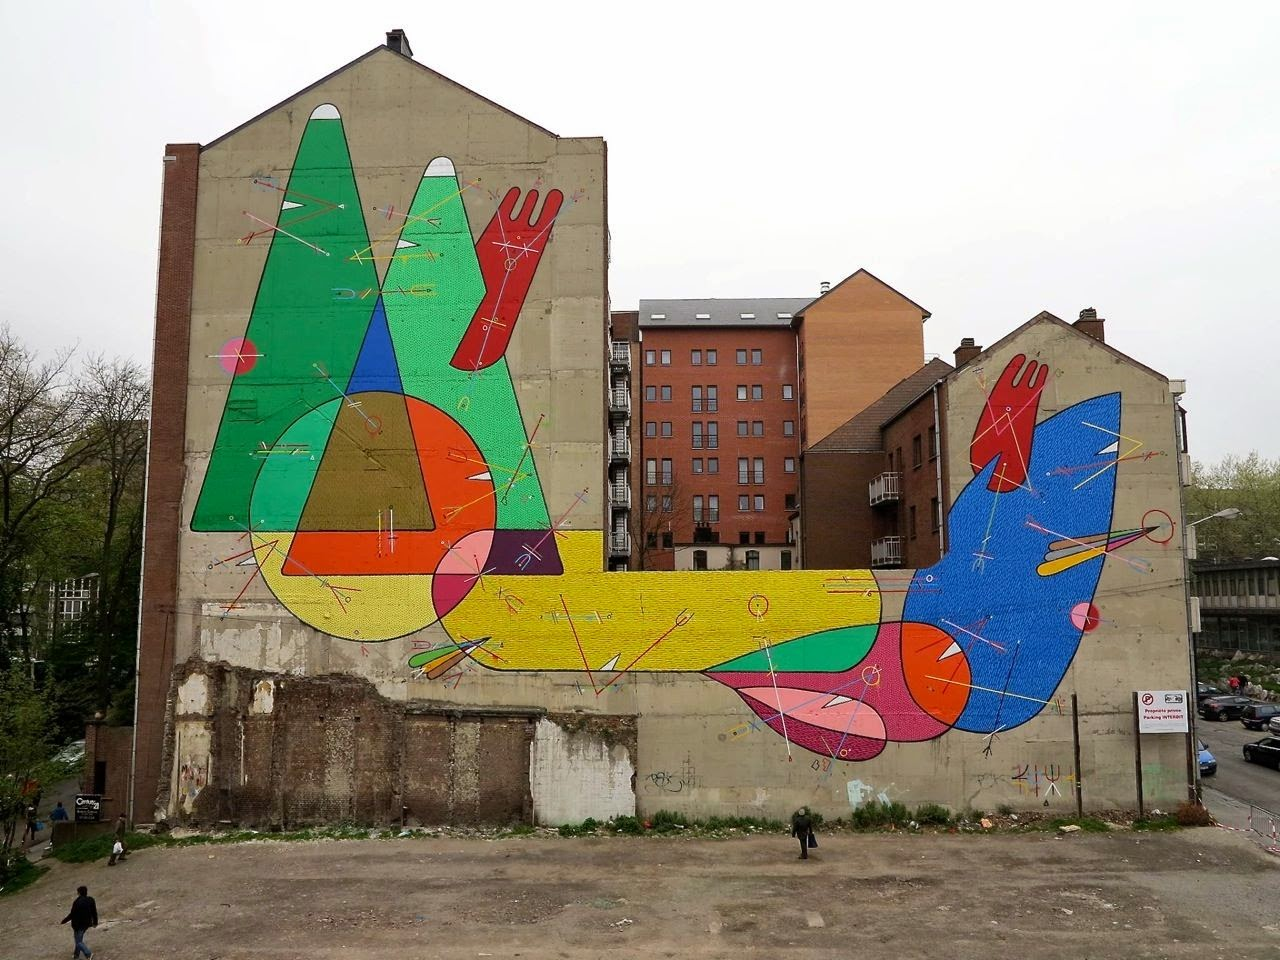 While we last heard from him a few months ago with Okuda and Suso33 in Madrid (covered), Sixe Paredes is now in Charleroi, Belgium where he just finished working on this stunning new piece. 1